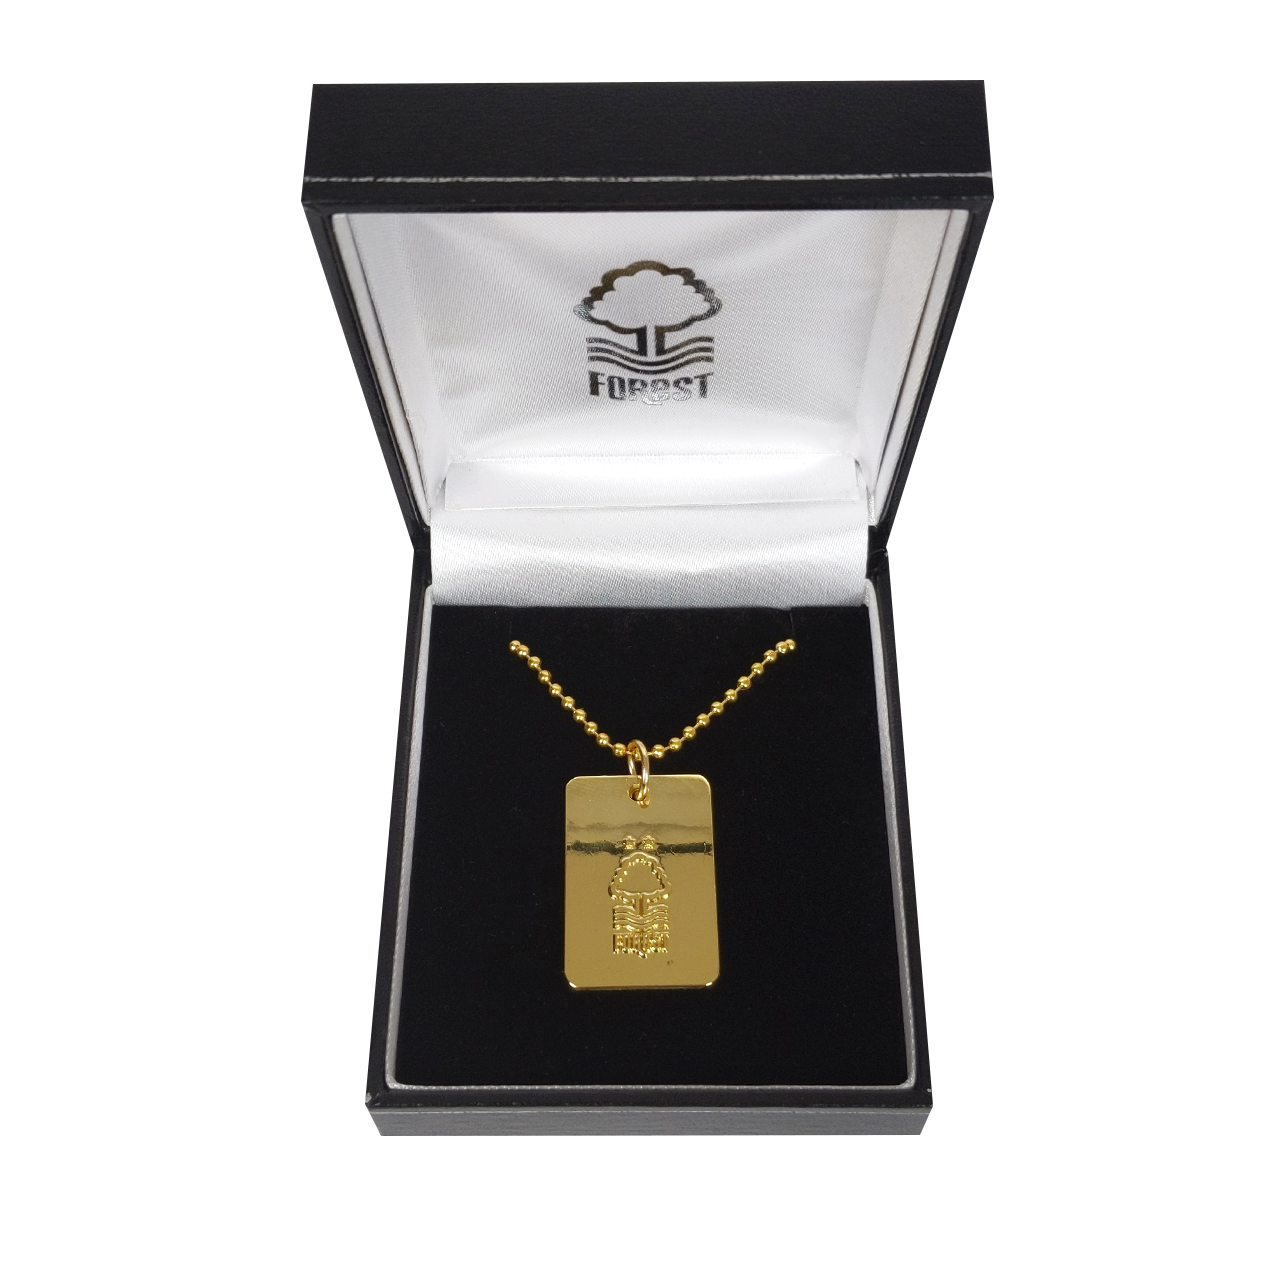 NFFC Gold Plated Crest Dog Tag and Chain